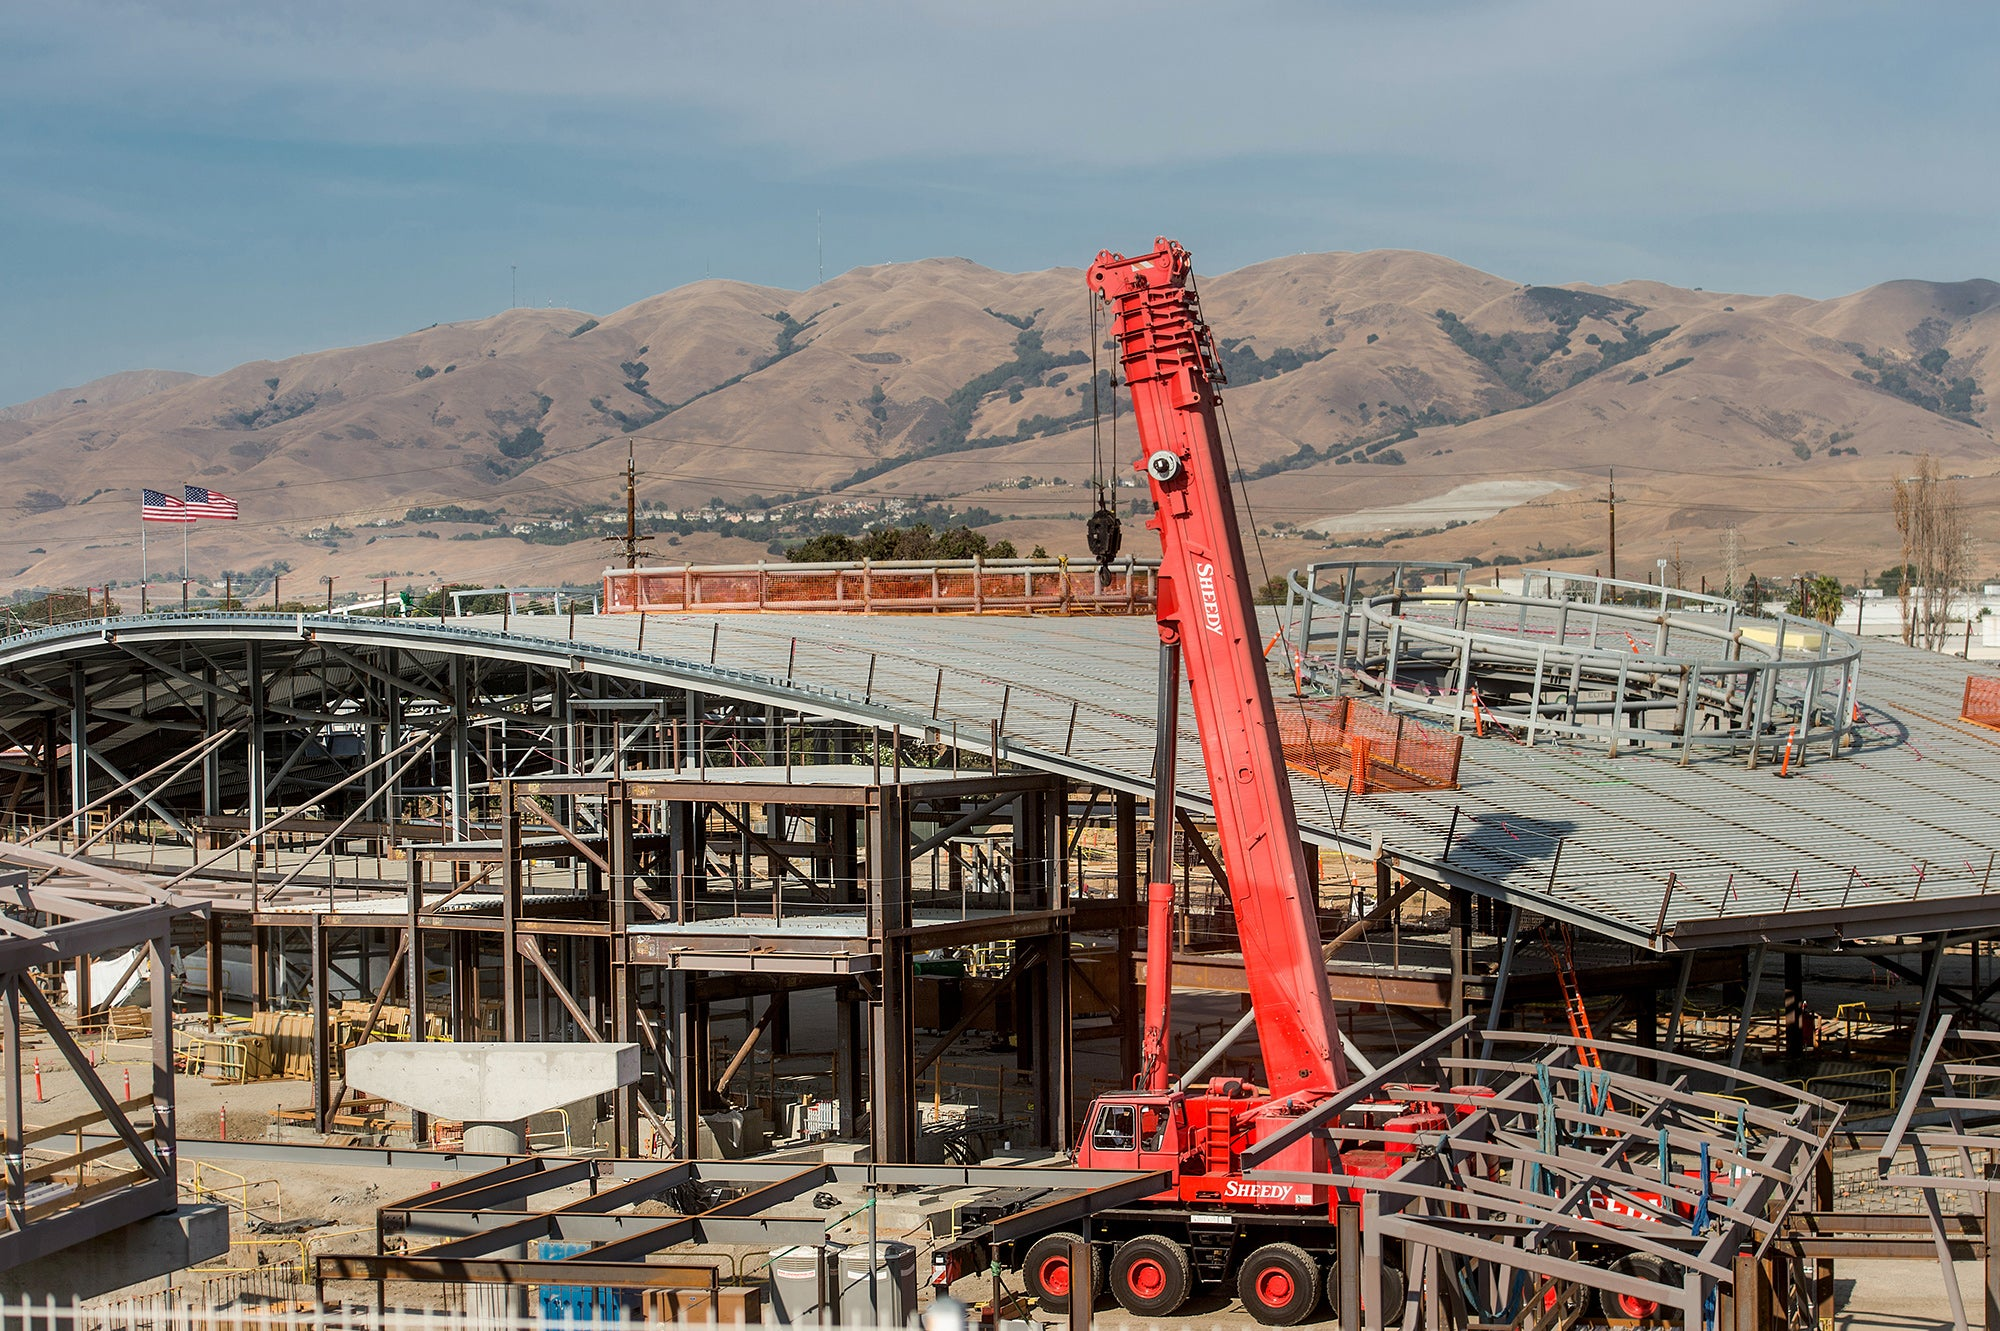 Milpitas BART Station: Crews work on the frame and roof of the station.